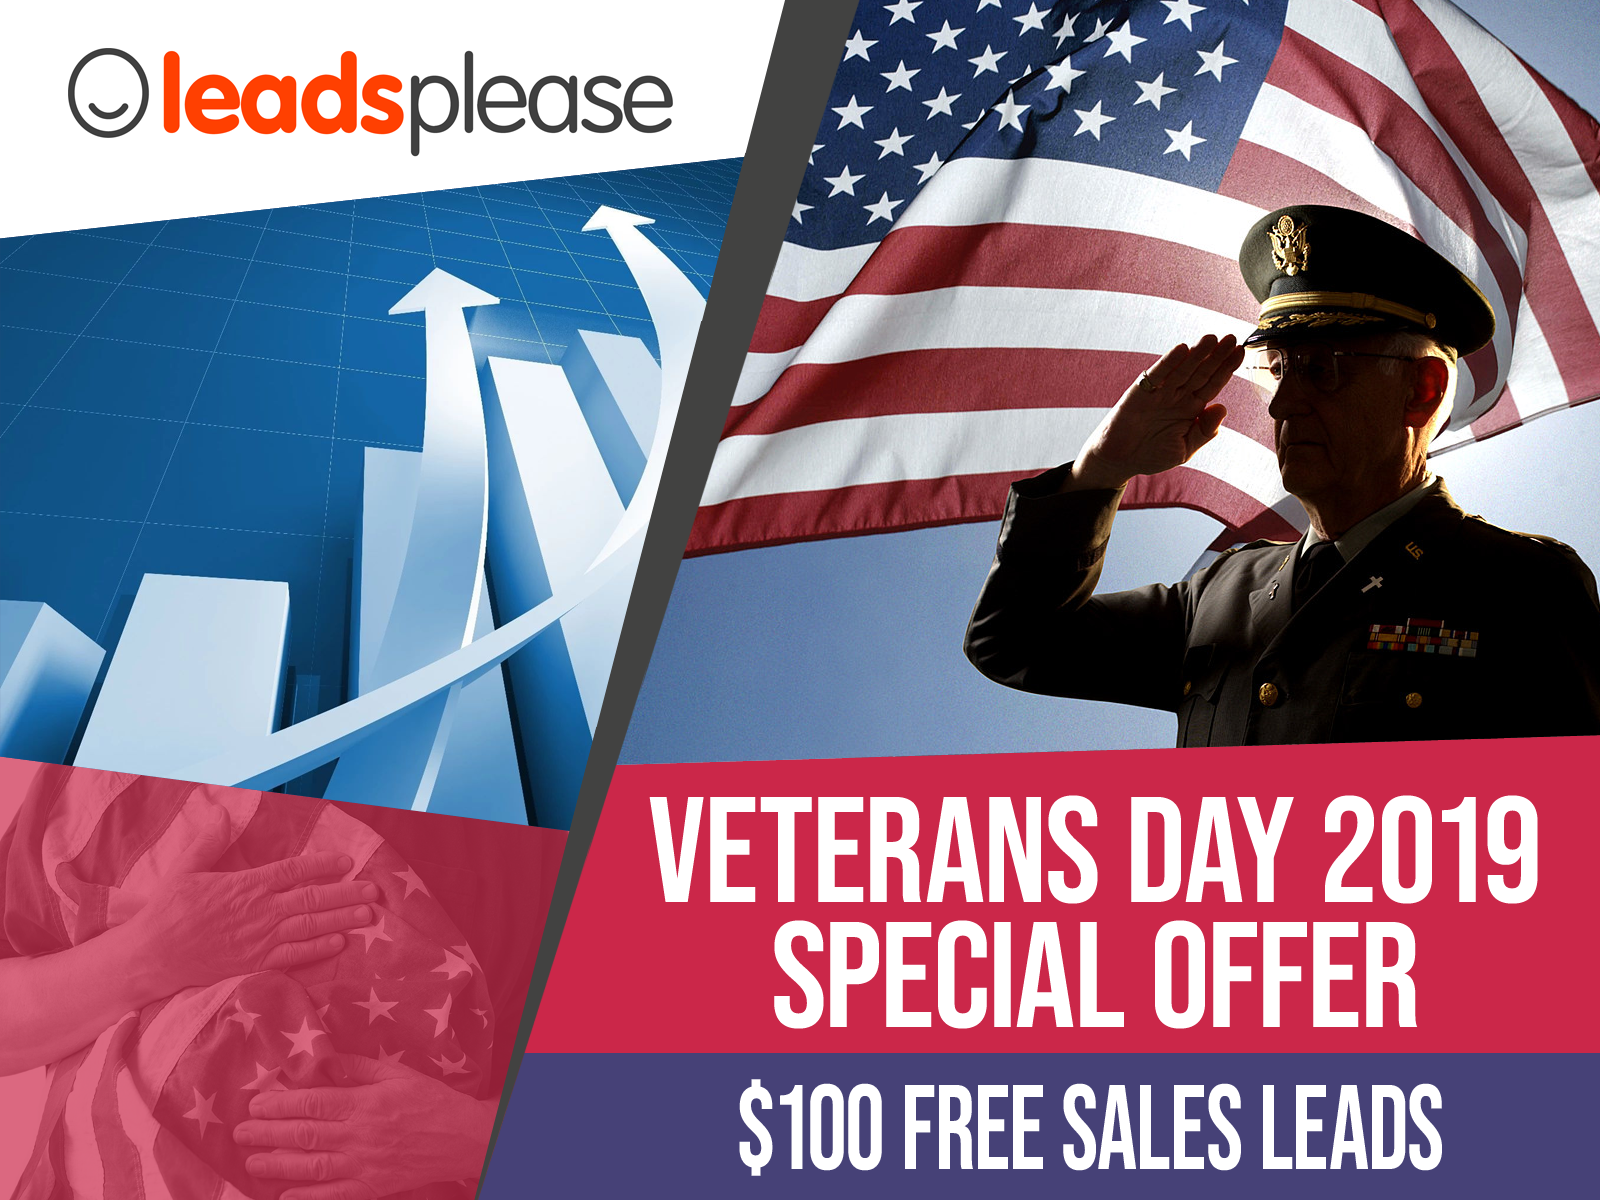 Veterans Day 2019 Special Offer - $100 Free Leads